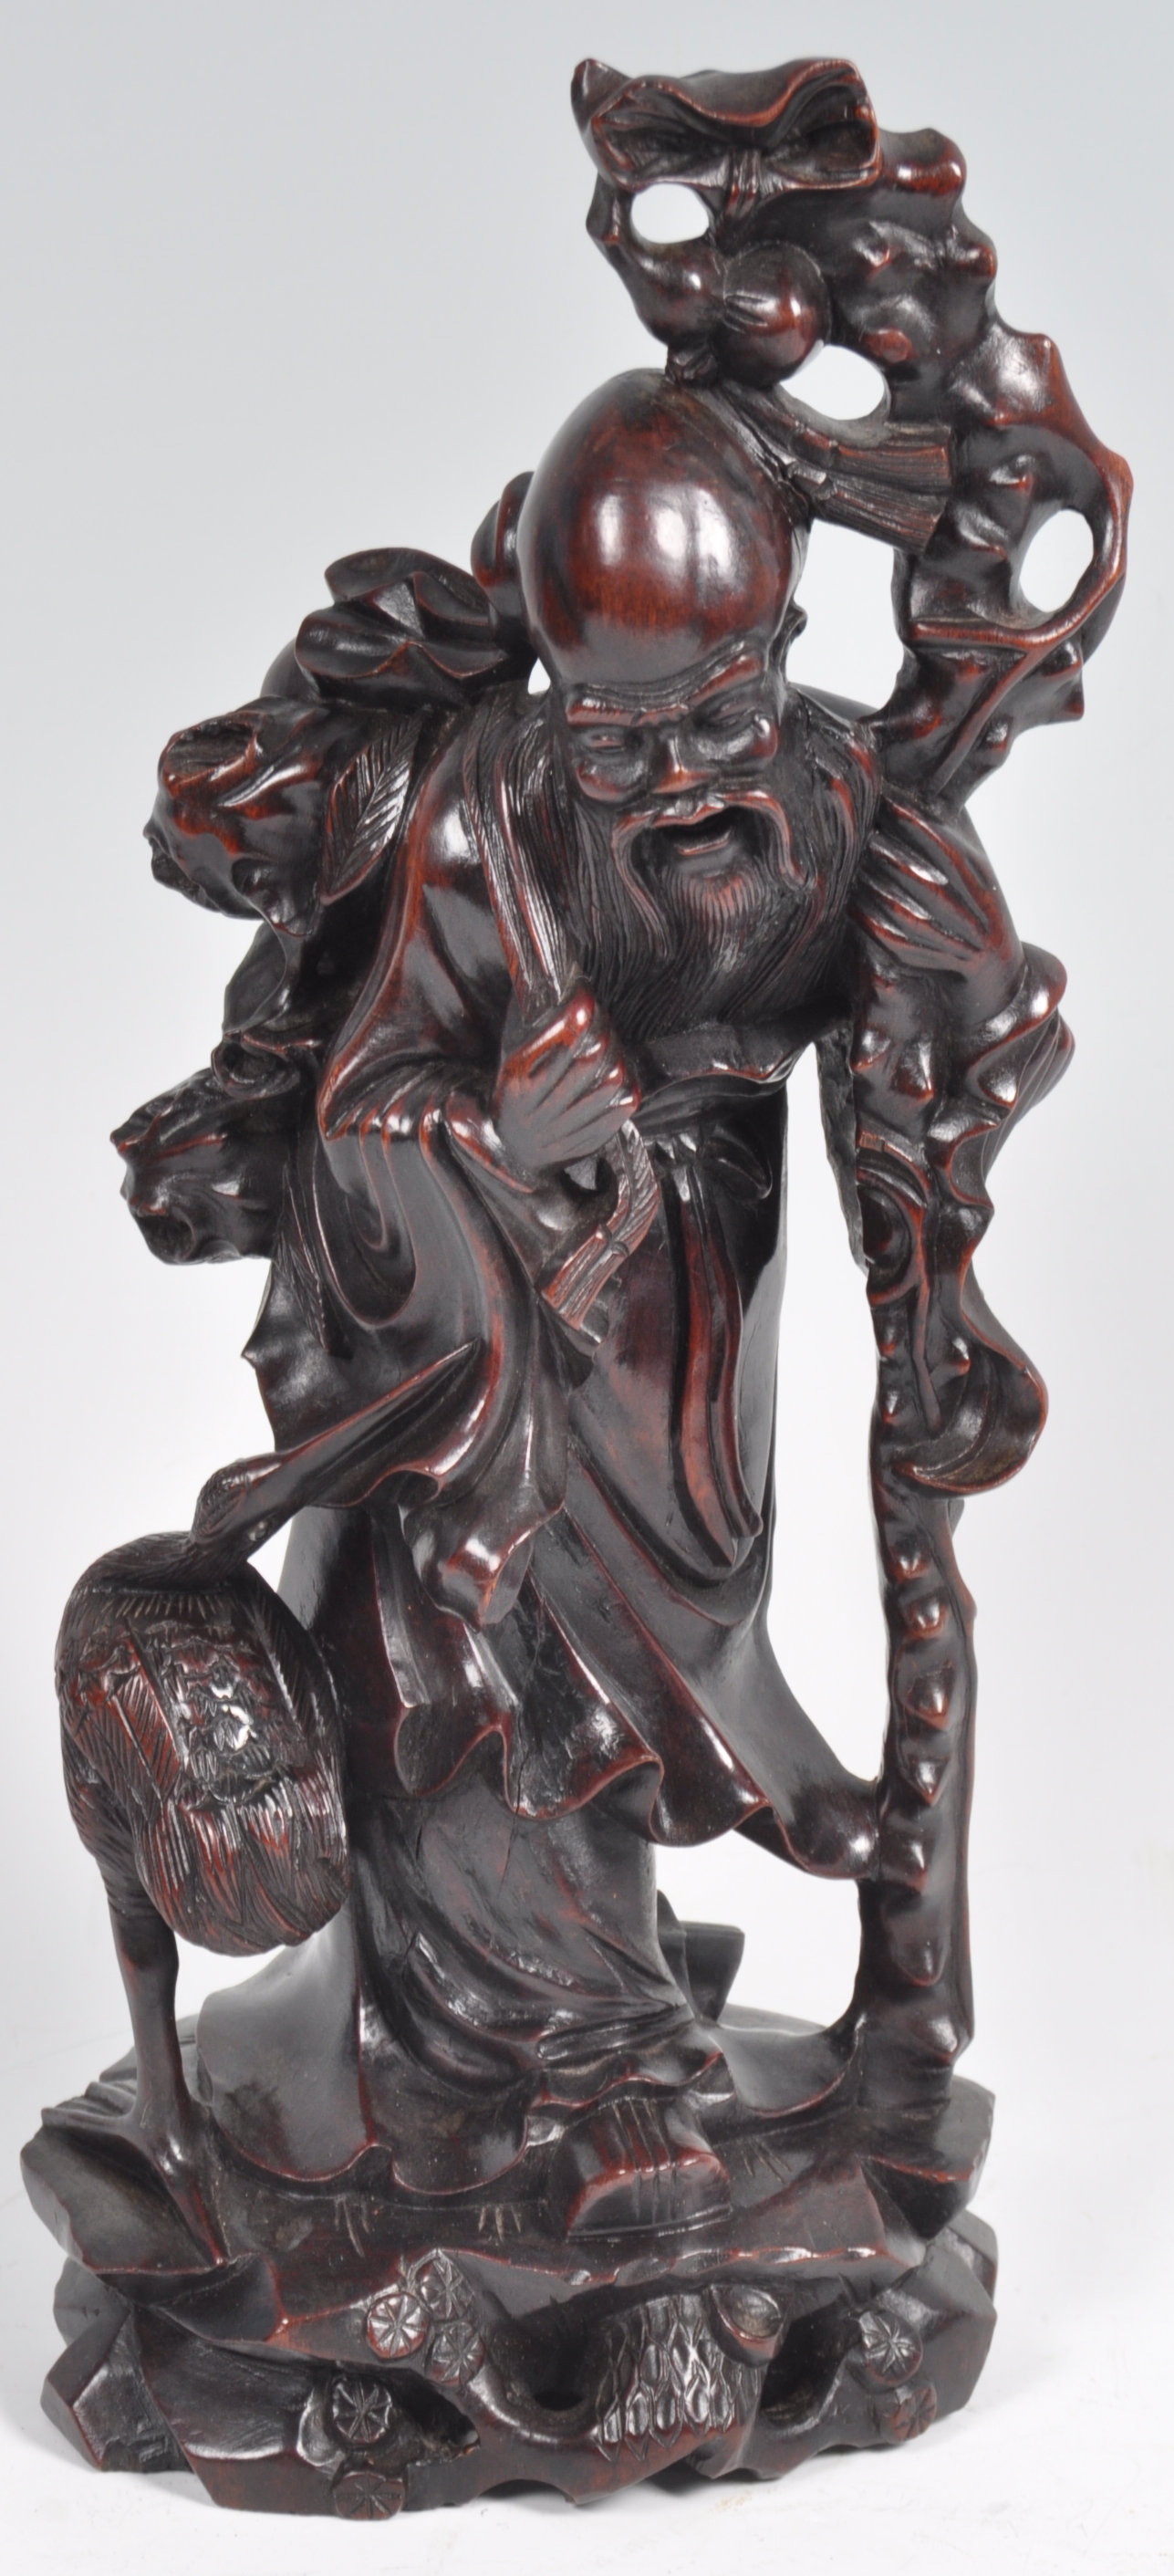 Lot 14 - 19TH CENTURY CHINESE ANTIQUE CARVED HARDWOOD FIGURINE OF SHAO LAO